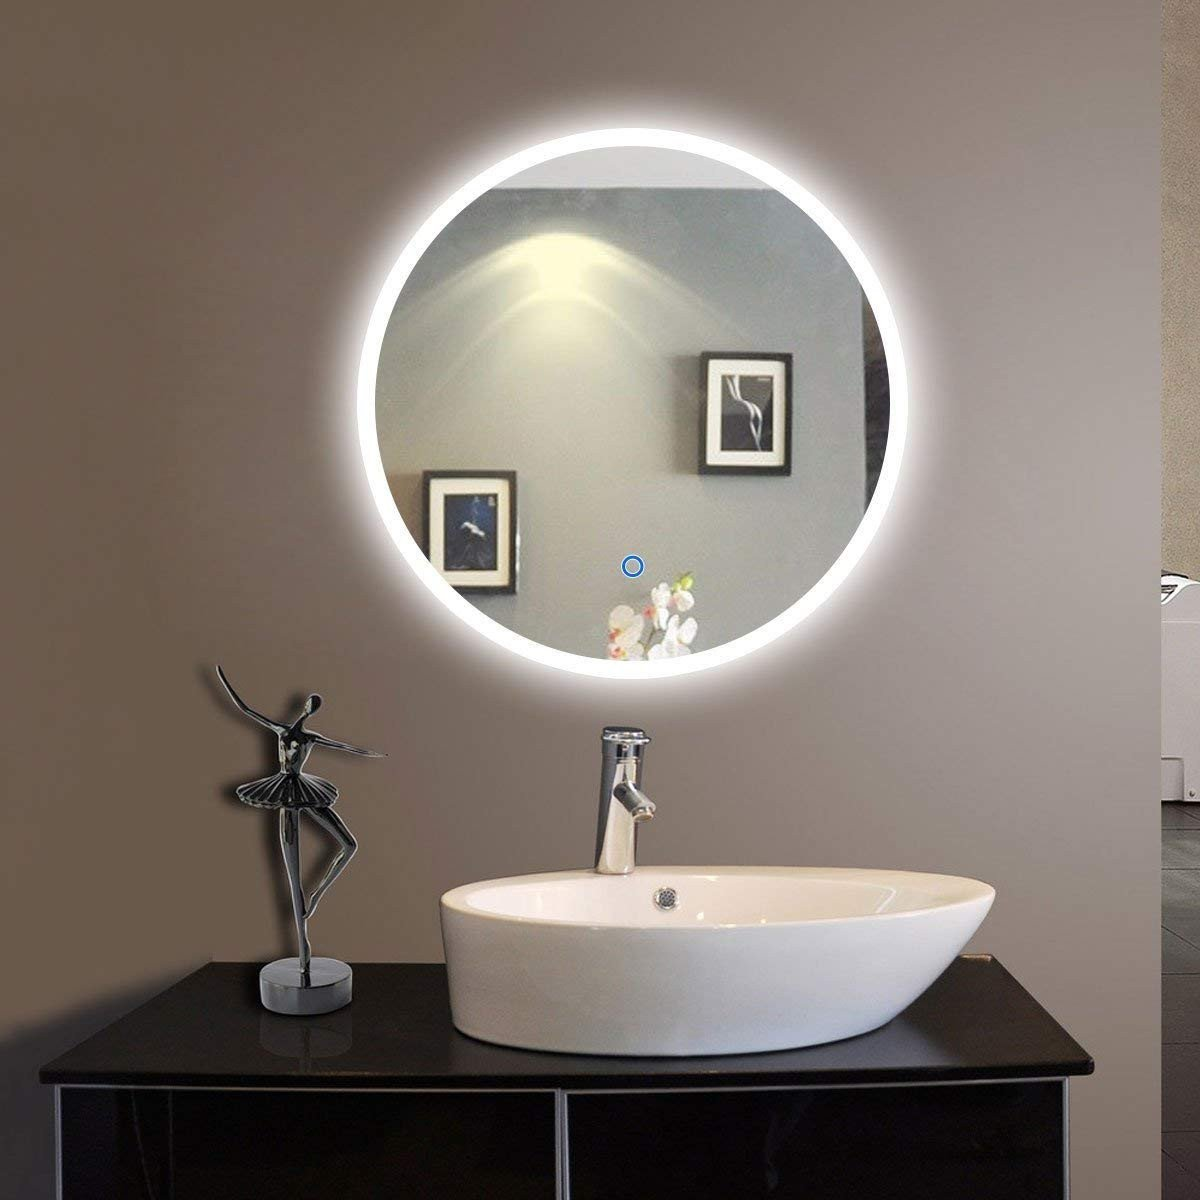 Vanity Mirror with Light for Bedroom Beautiful 24 X 24 In Round Led Bathroom Silvered Mirror with touch button C Cl065 1